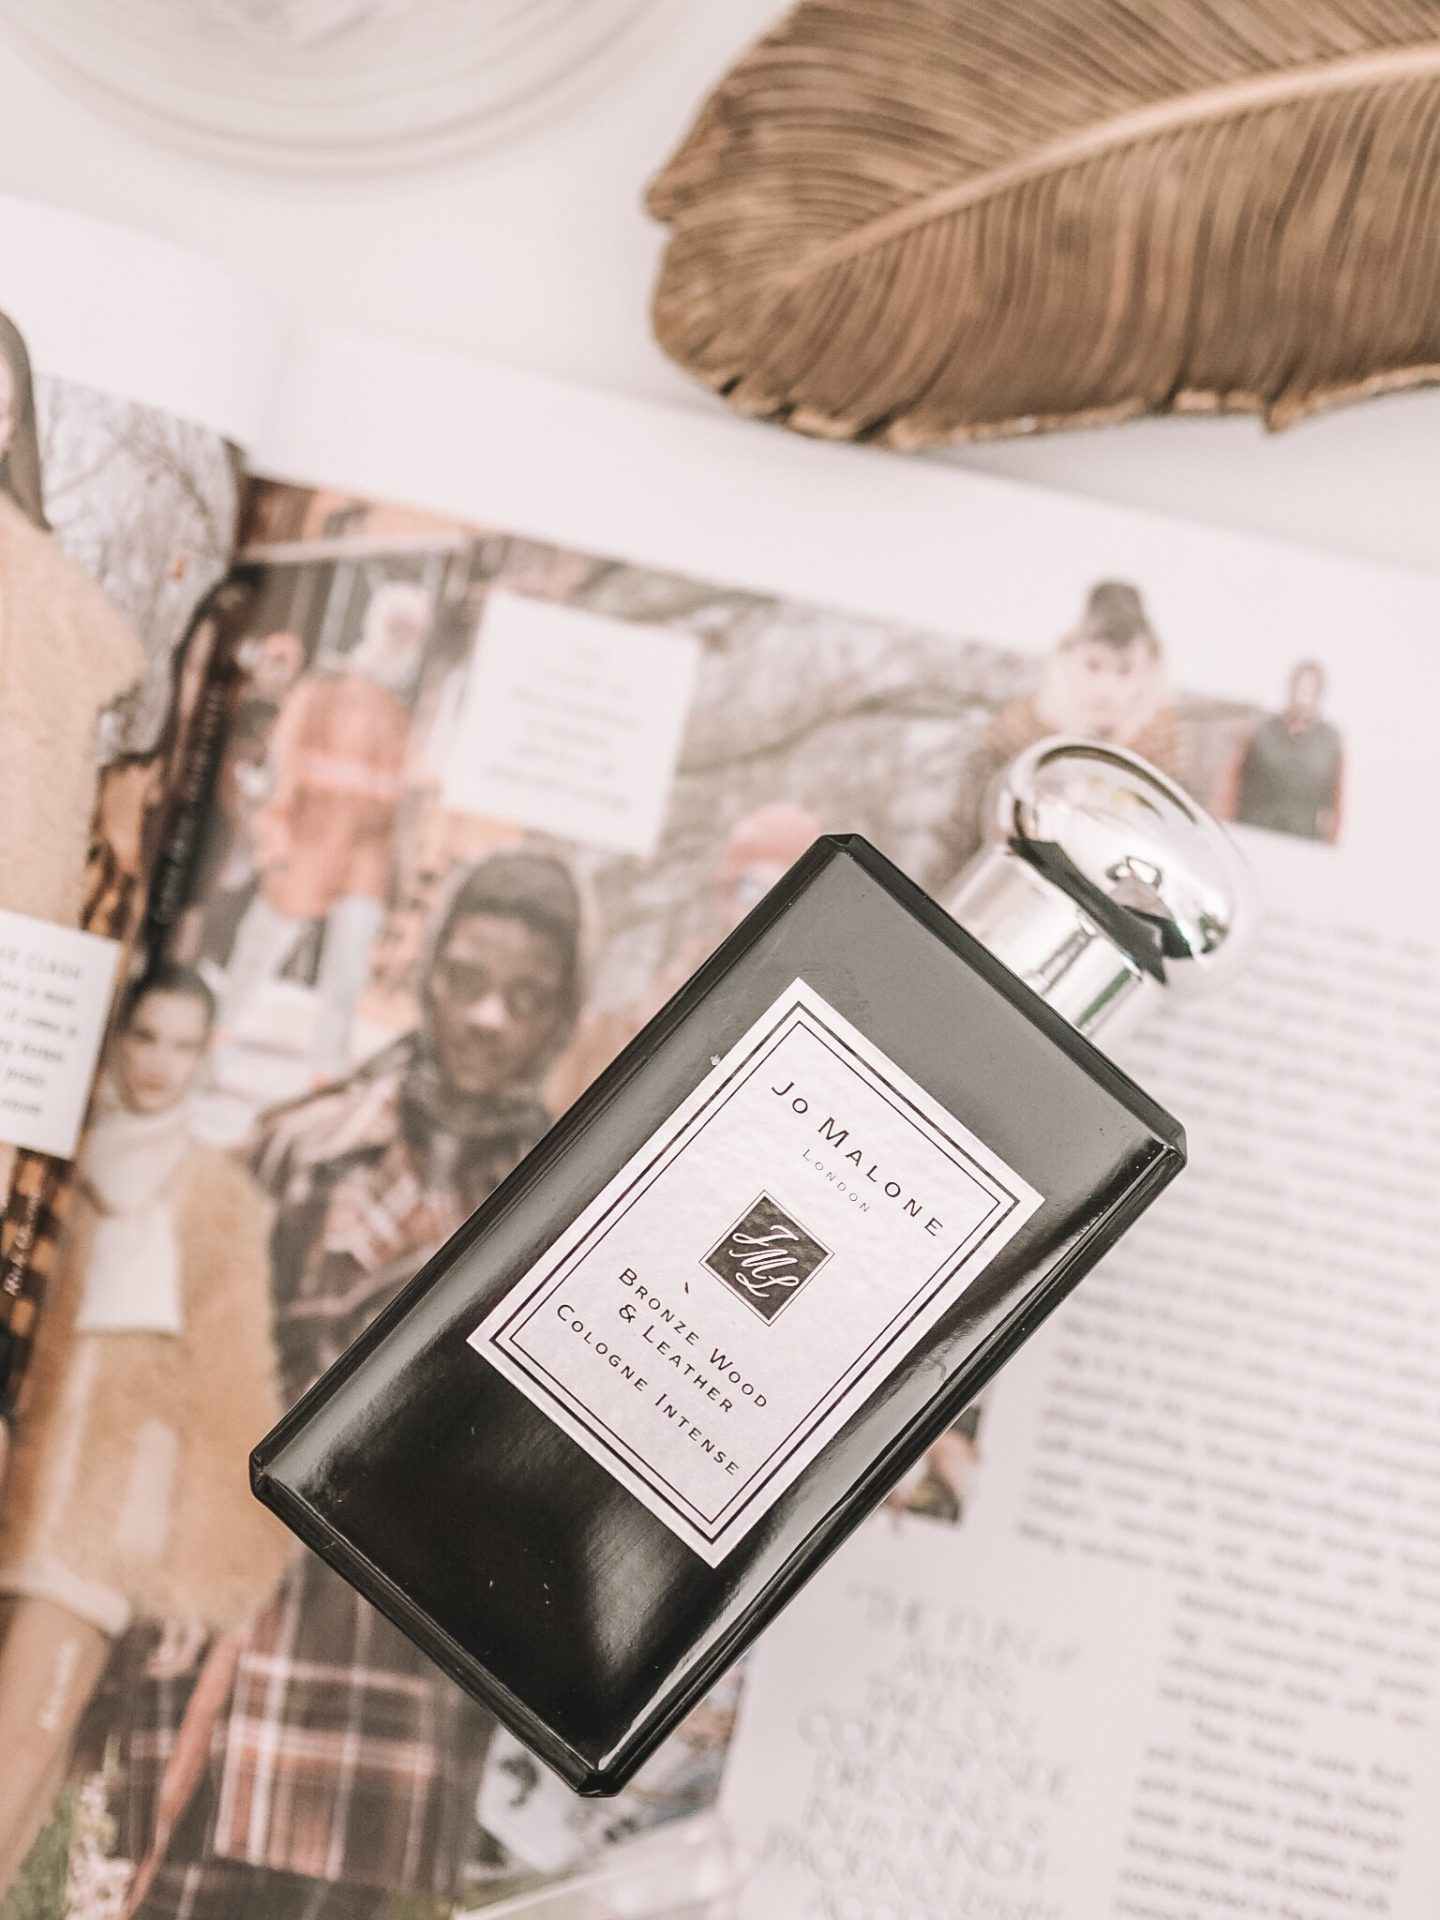 Jo Malone Bronze Wood & Leather Cologne Intense